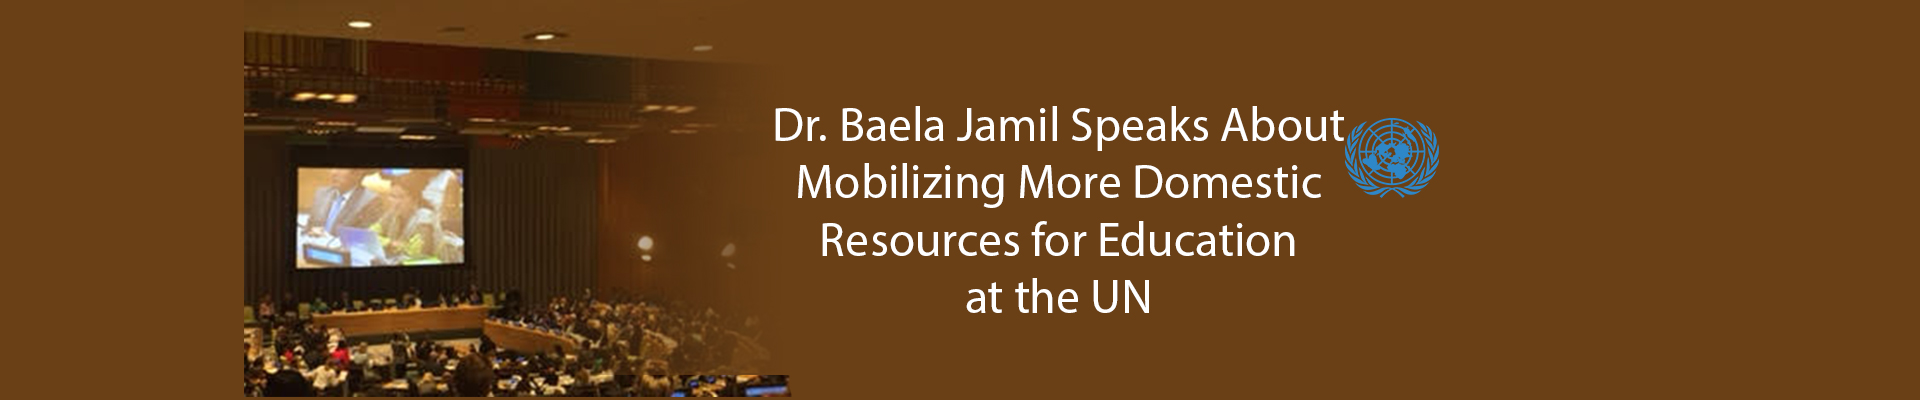 Dr. Baela Jamil Speaks About Mobilizing More Domestic Resources for Education at the UN